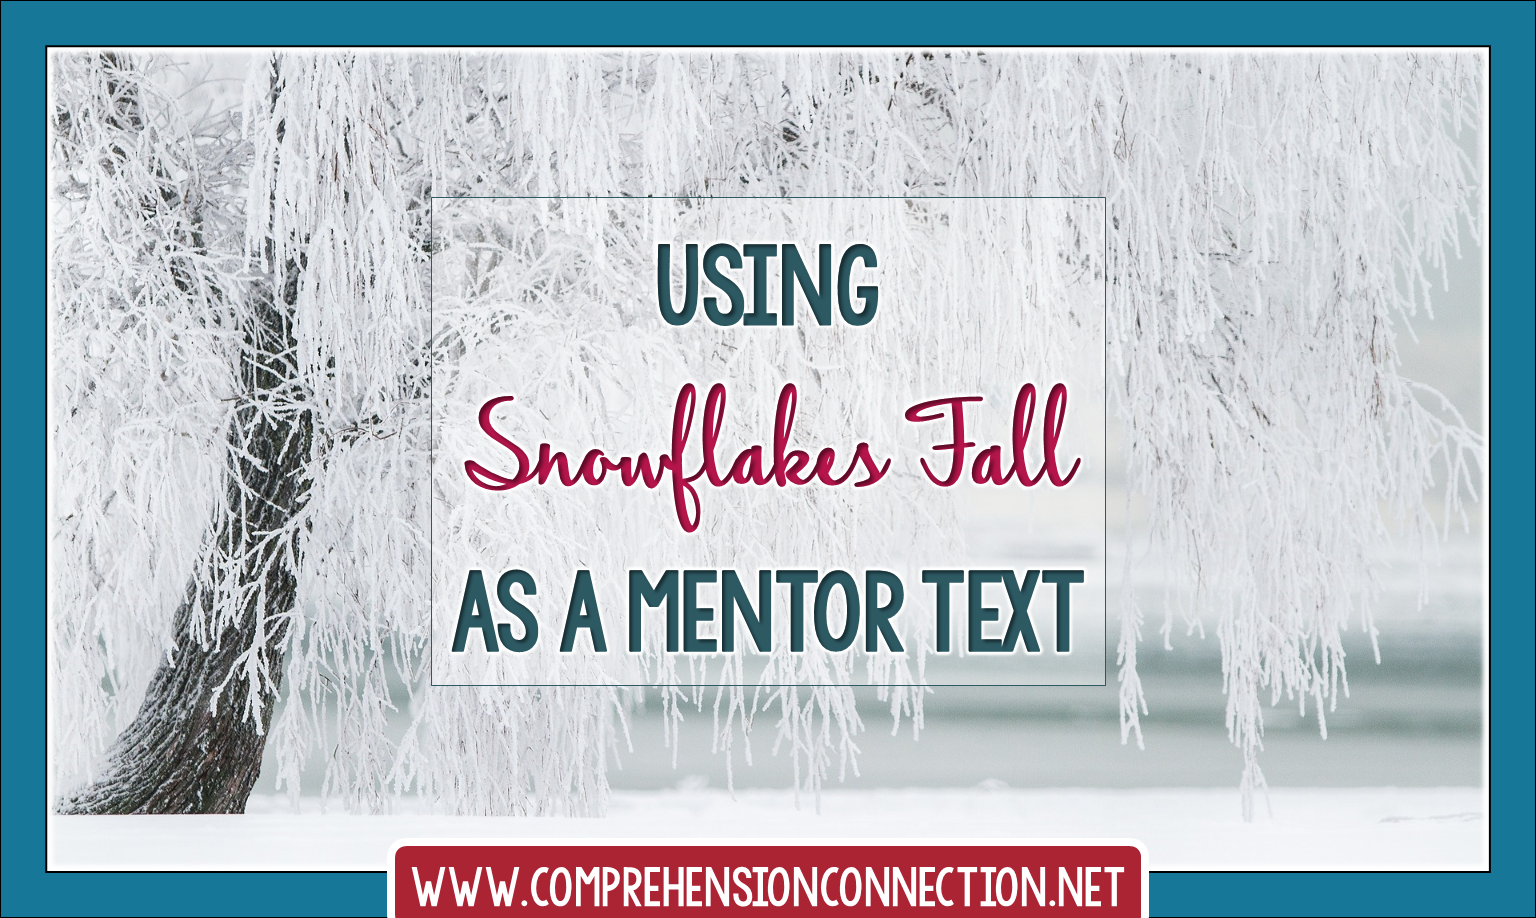 Snowflakes Fall by Patricia MacLachlan is the perfect mentor text for descriptive writing in the winter. Check out the post to learn more.